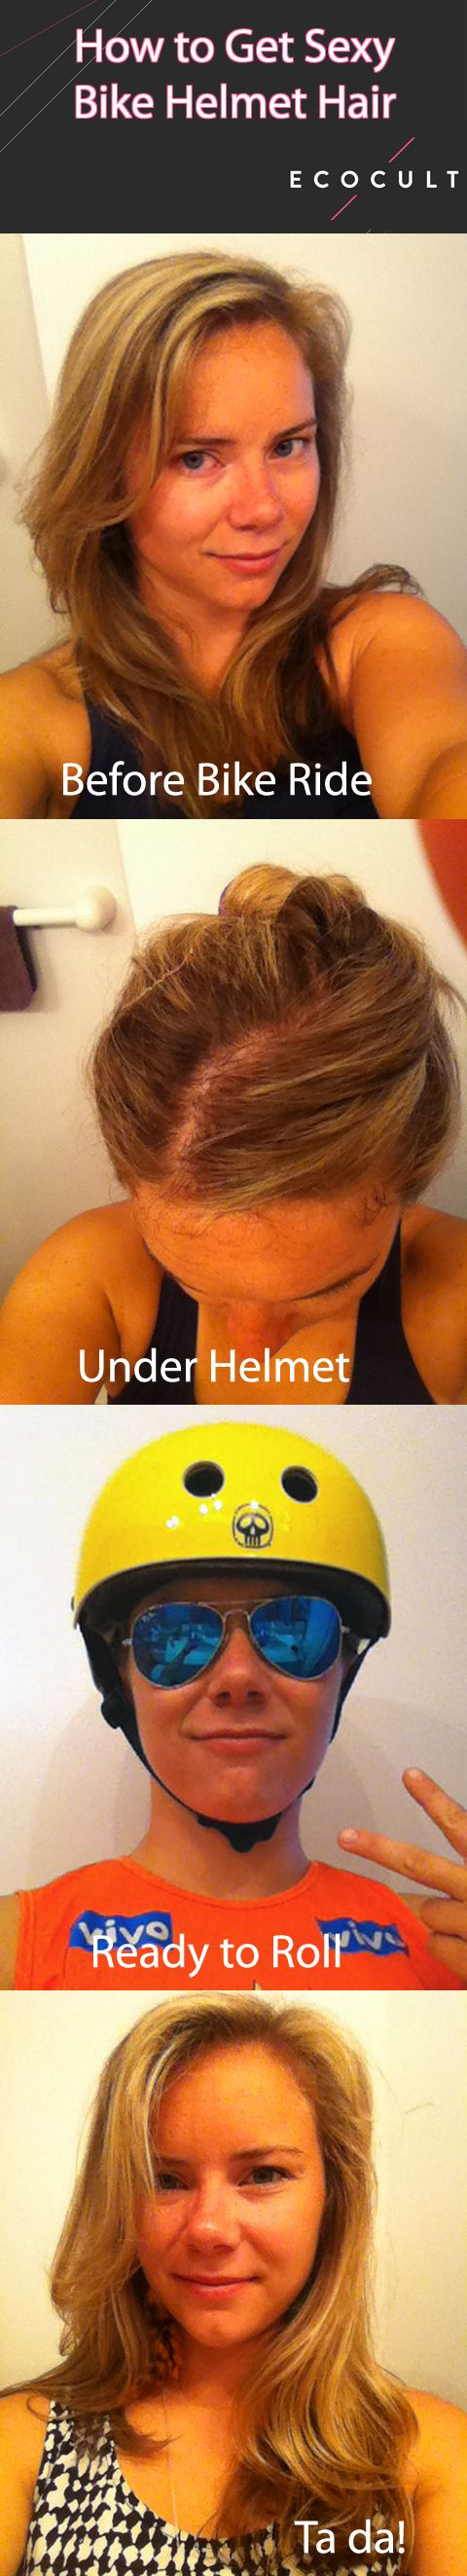 How to Turn Sweaty Bike Helmet Hair into Sexy Bike Helmet Hair